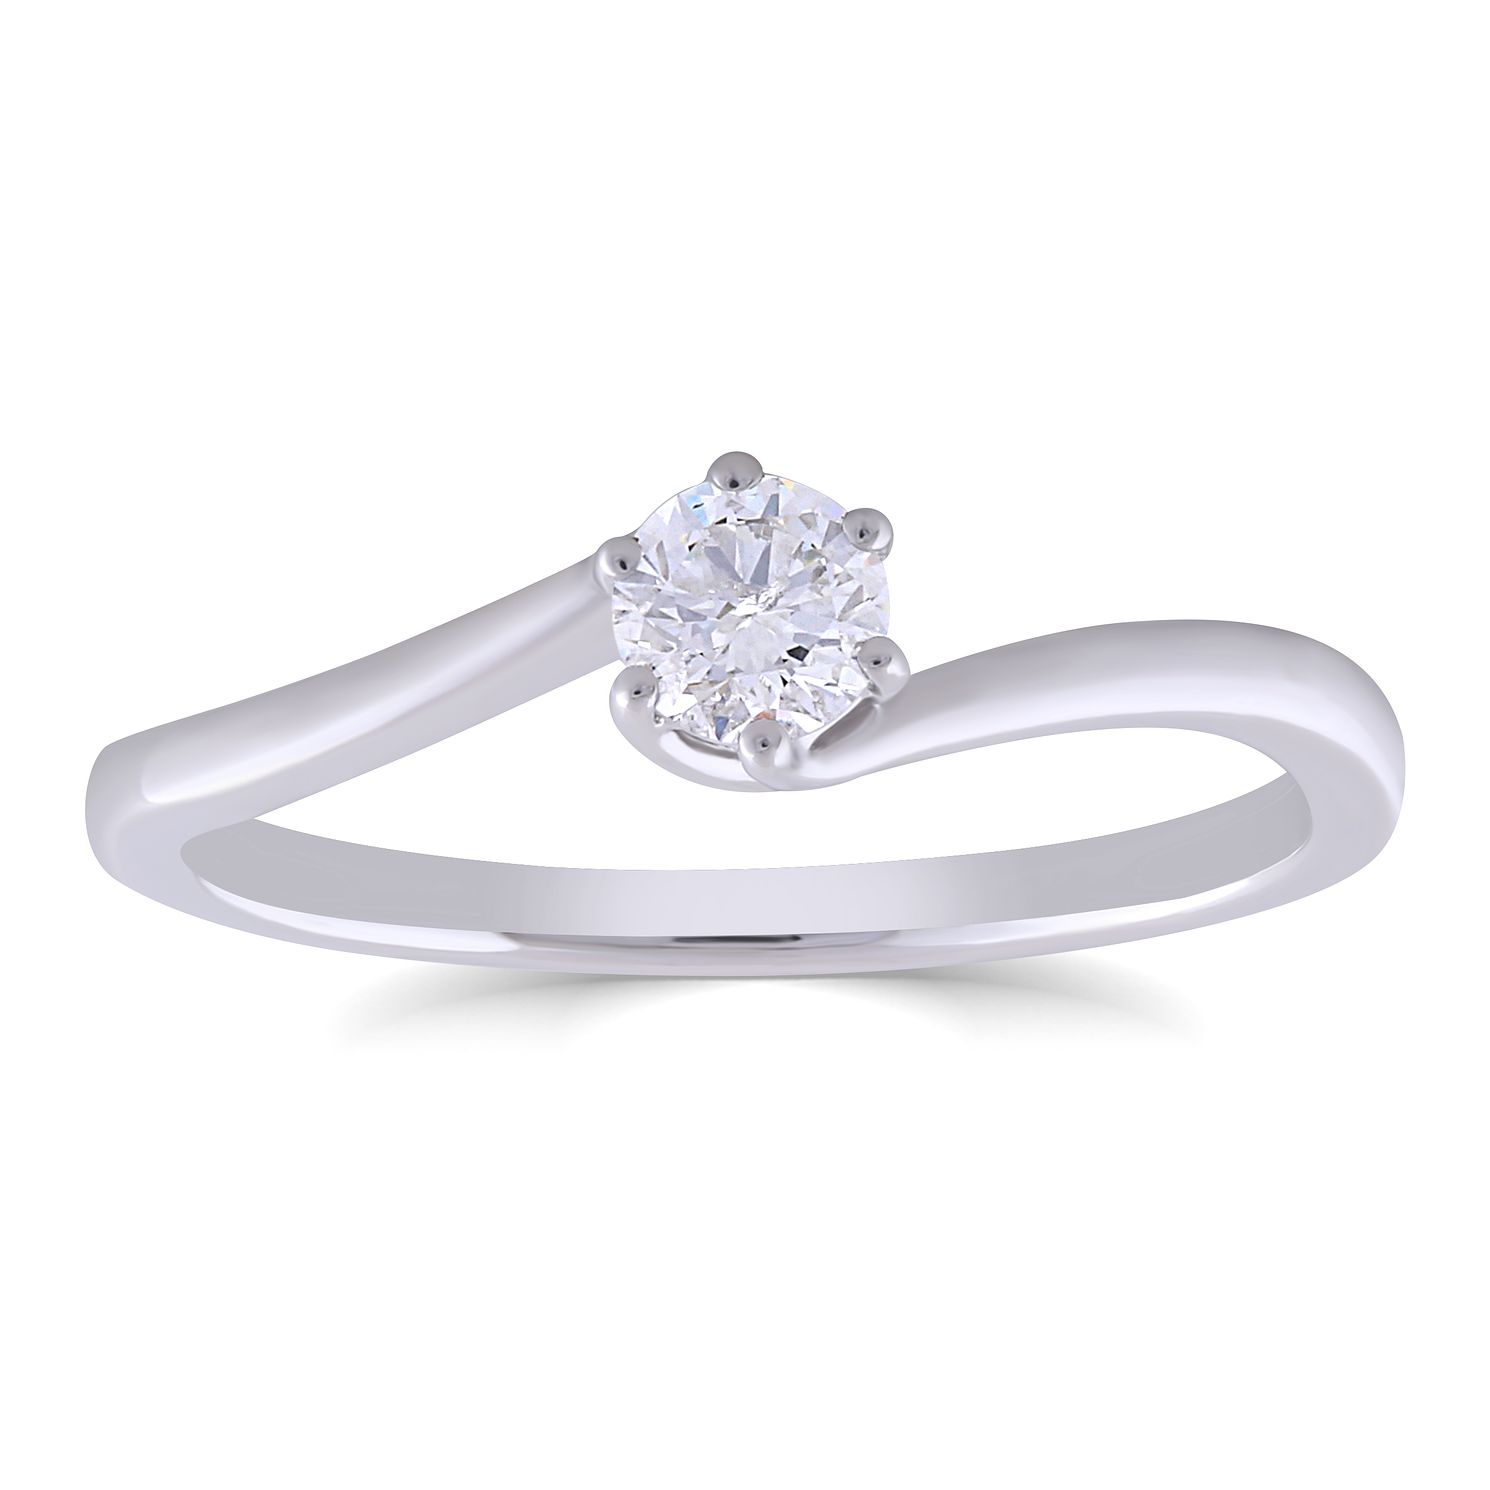 9ct White Gold 0.25ct Diamond 6 Claw Solitaire Ring - Product number 4998855